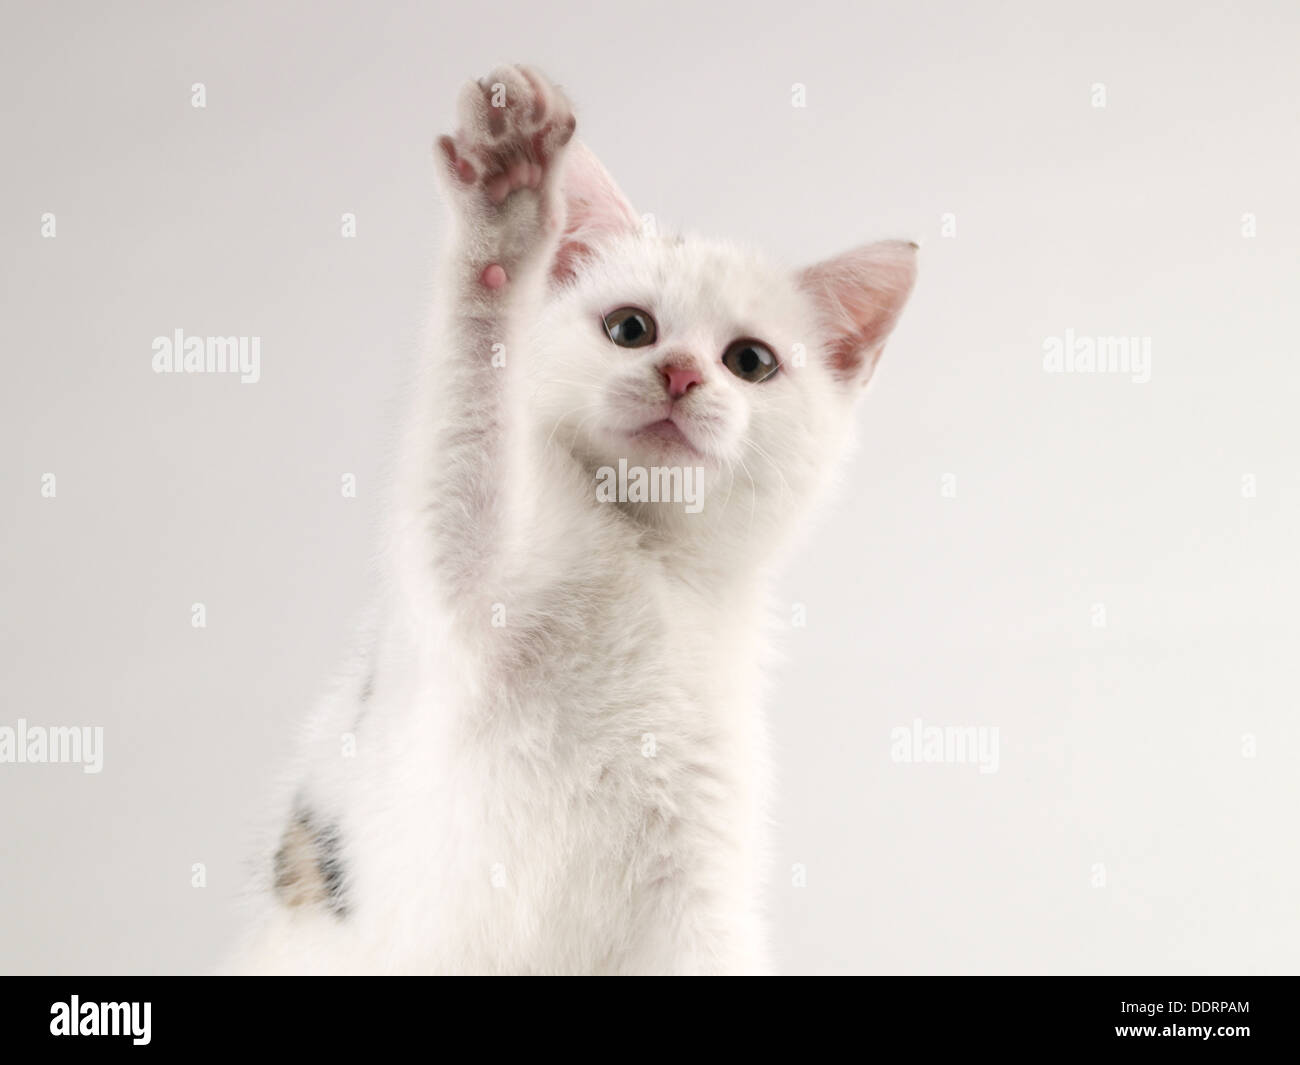 kitten playing on plain background after drinking milk cat - Stock Image